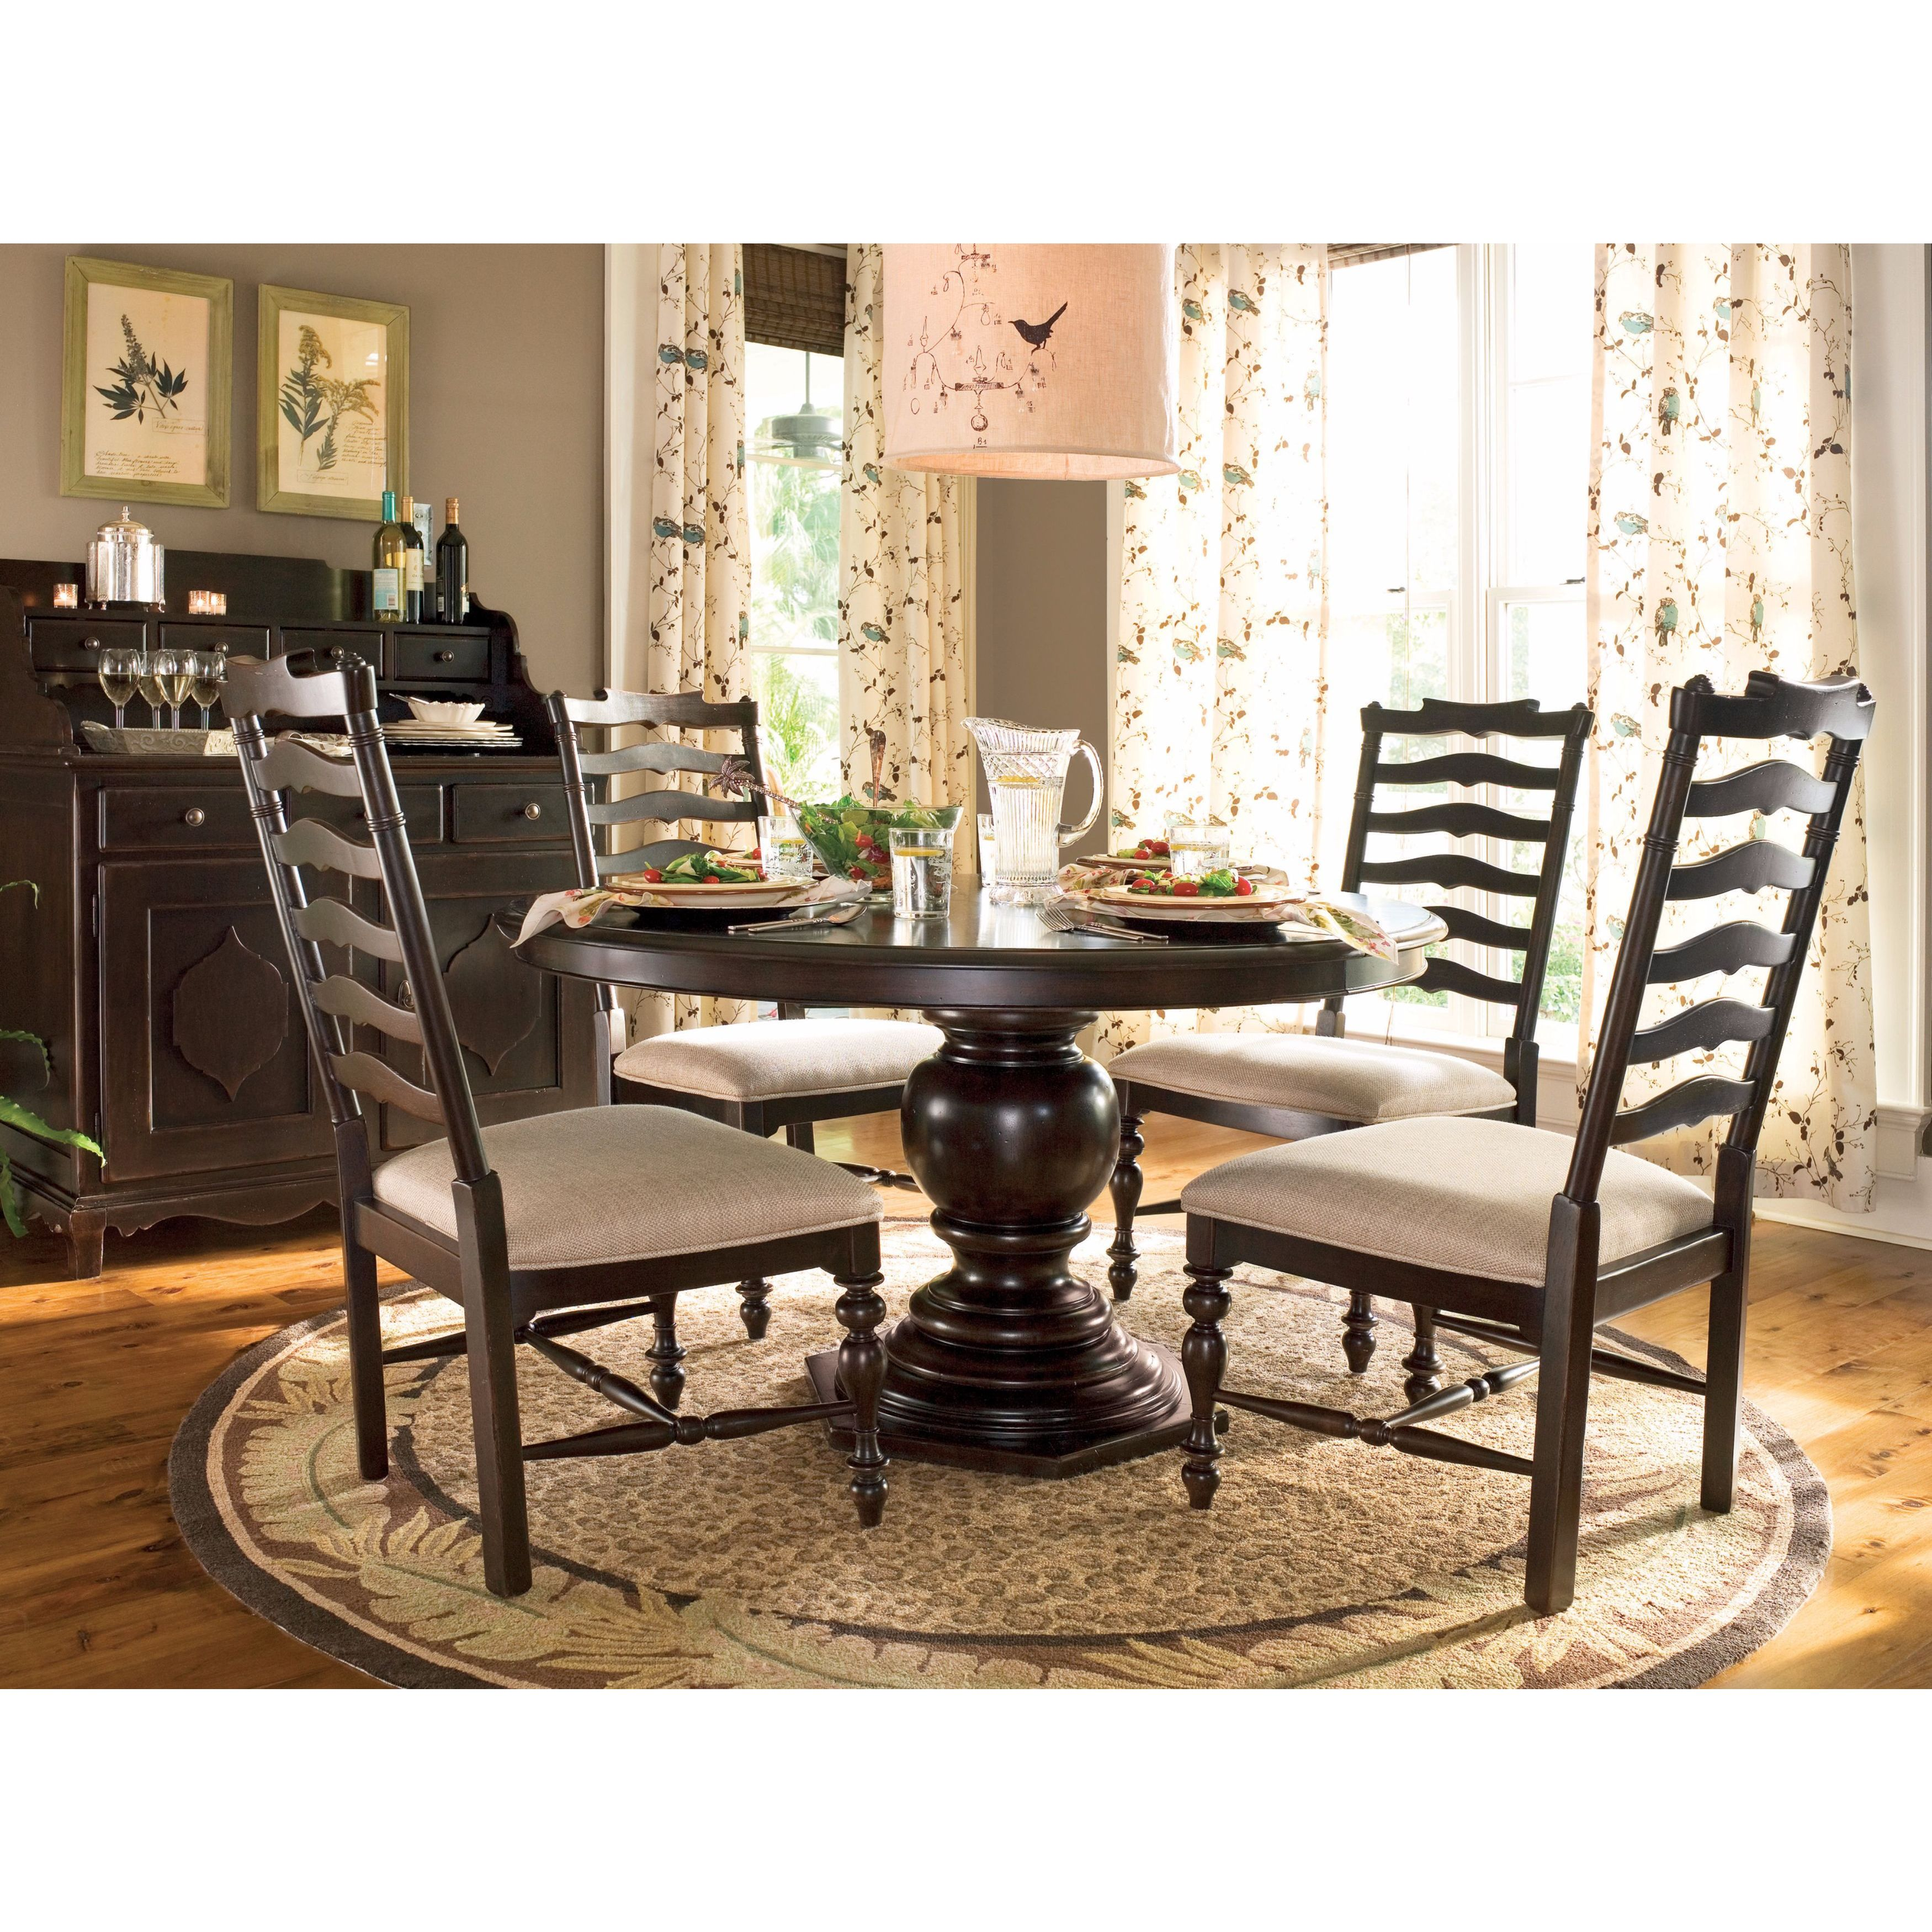 Shop Paula Deen Home Round Pedestal Table Complete In Tobacco Finish